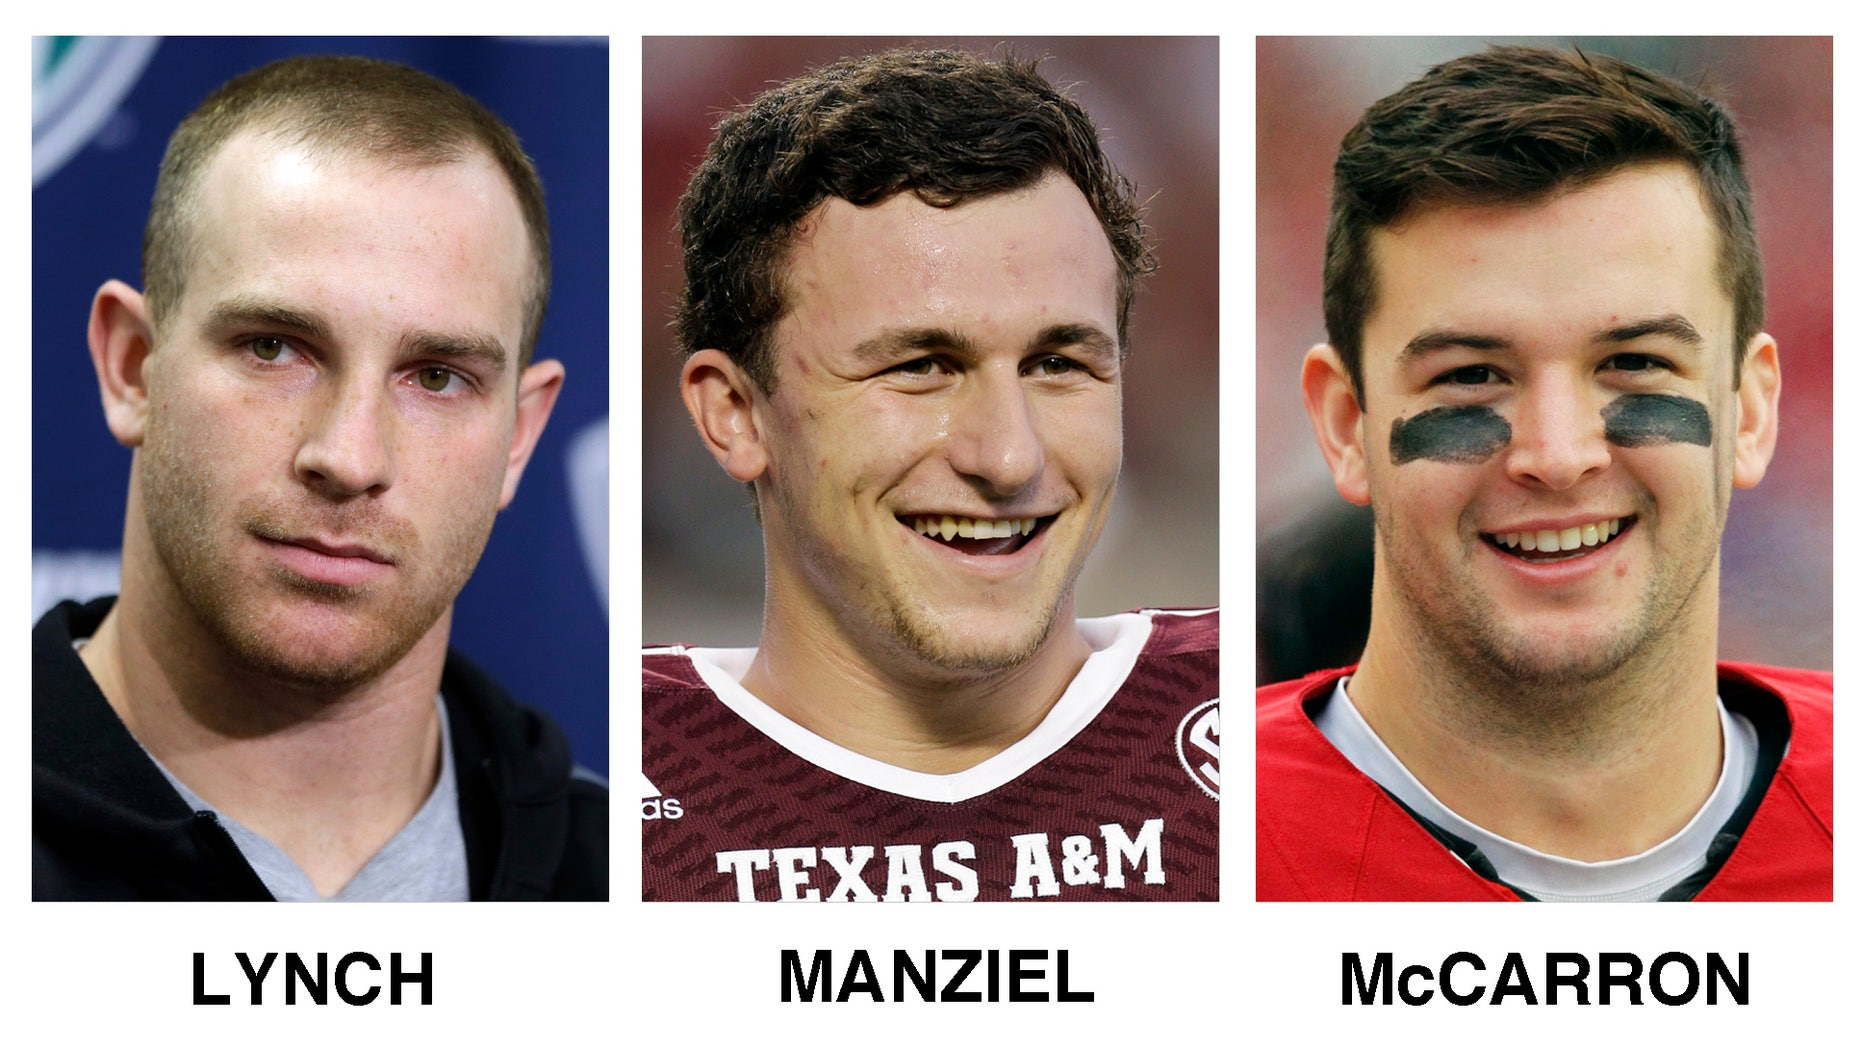 FILE - This combo of file photos shows the six Heisman Trophy finalist, from left, Northern Illinois quarterback Jordan Lynch, Texas A&M quarterback Johnny Manziel, Alabama's quarterback AJ McCarron, Auburn running back Tre Mason, Boston College running back Andre Williams and Florida State quarterback Jameis Winston. The winner will be announced Saturday night, Dec. 14, 2013, in New York. (AP Photo/File)